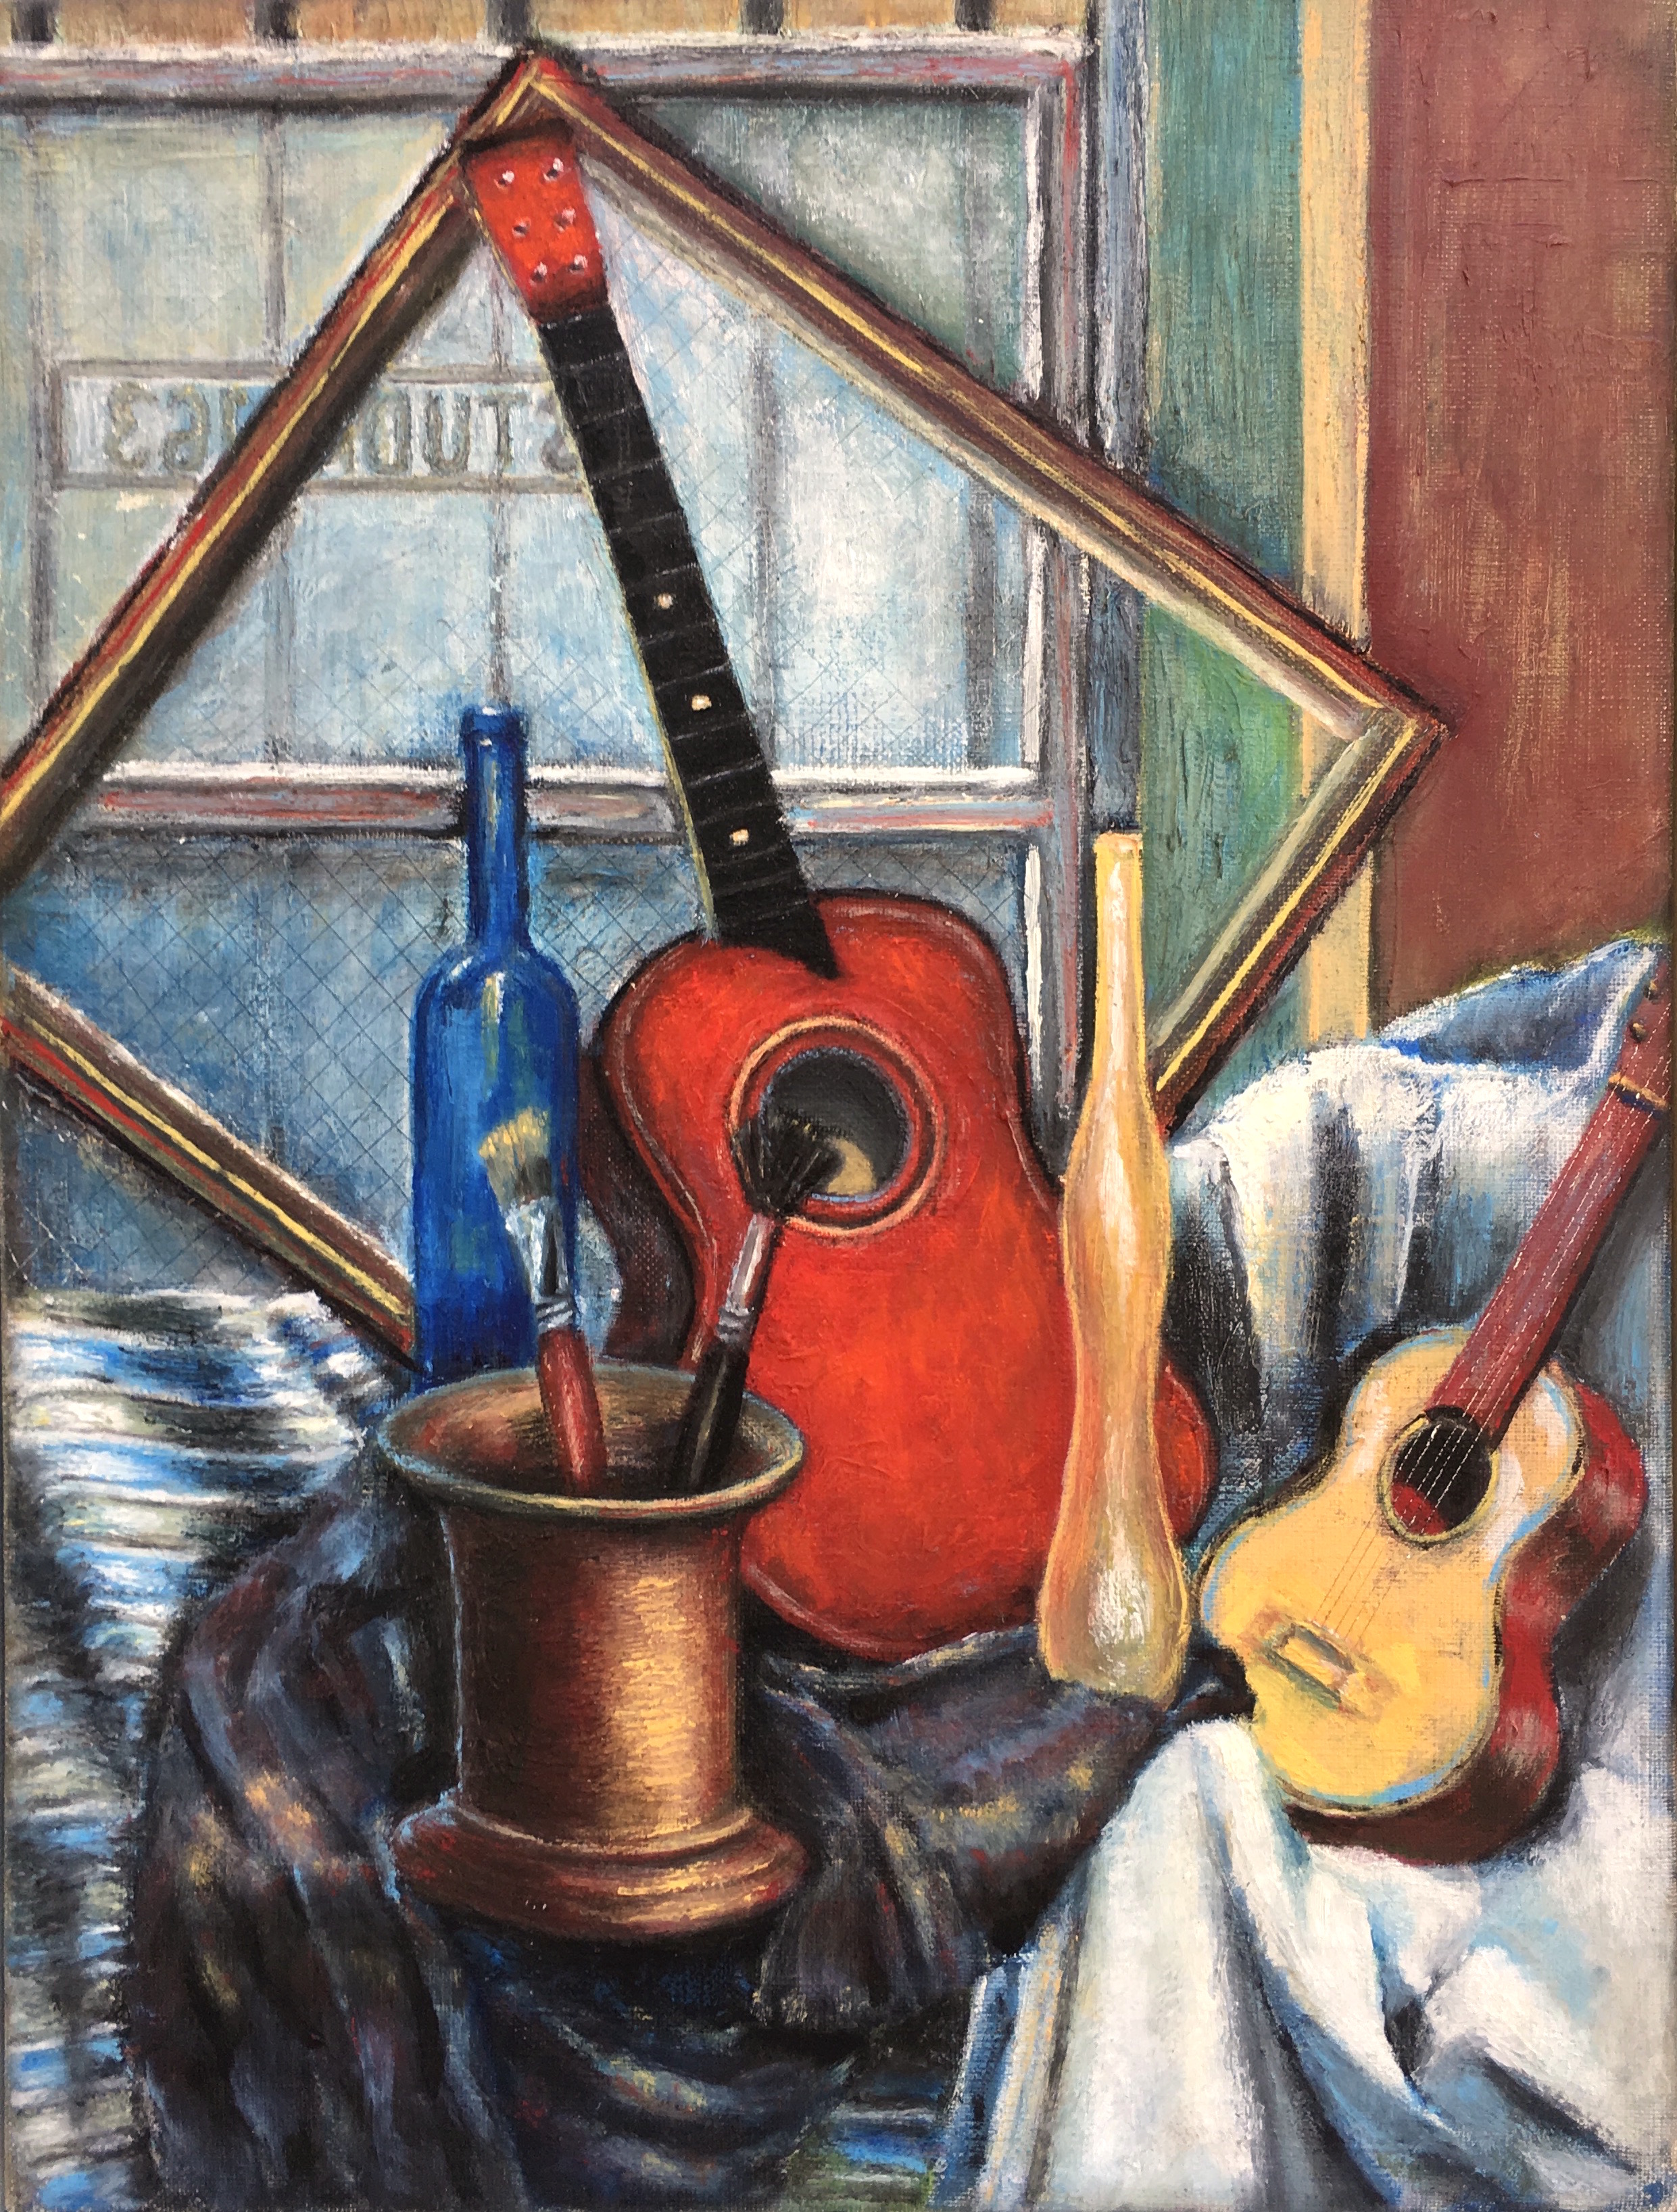 "2015 | Toy Guitars | Oil on linen | 12"" x 9"" (30.5 cm x 22.9 cm)"